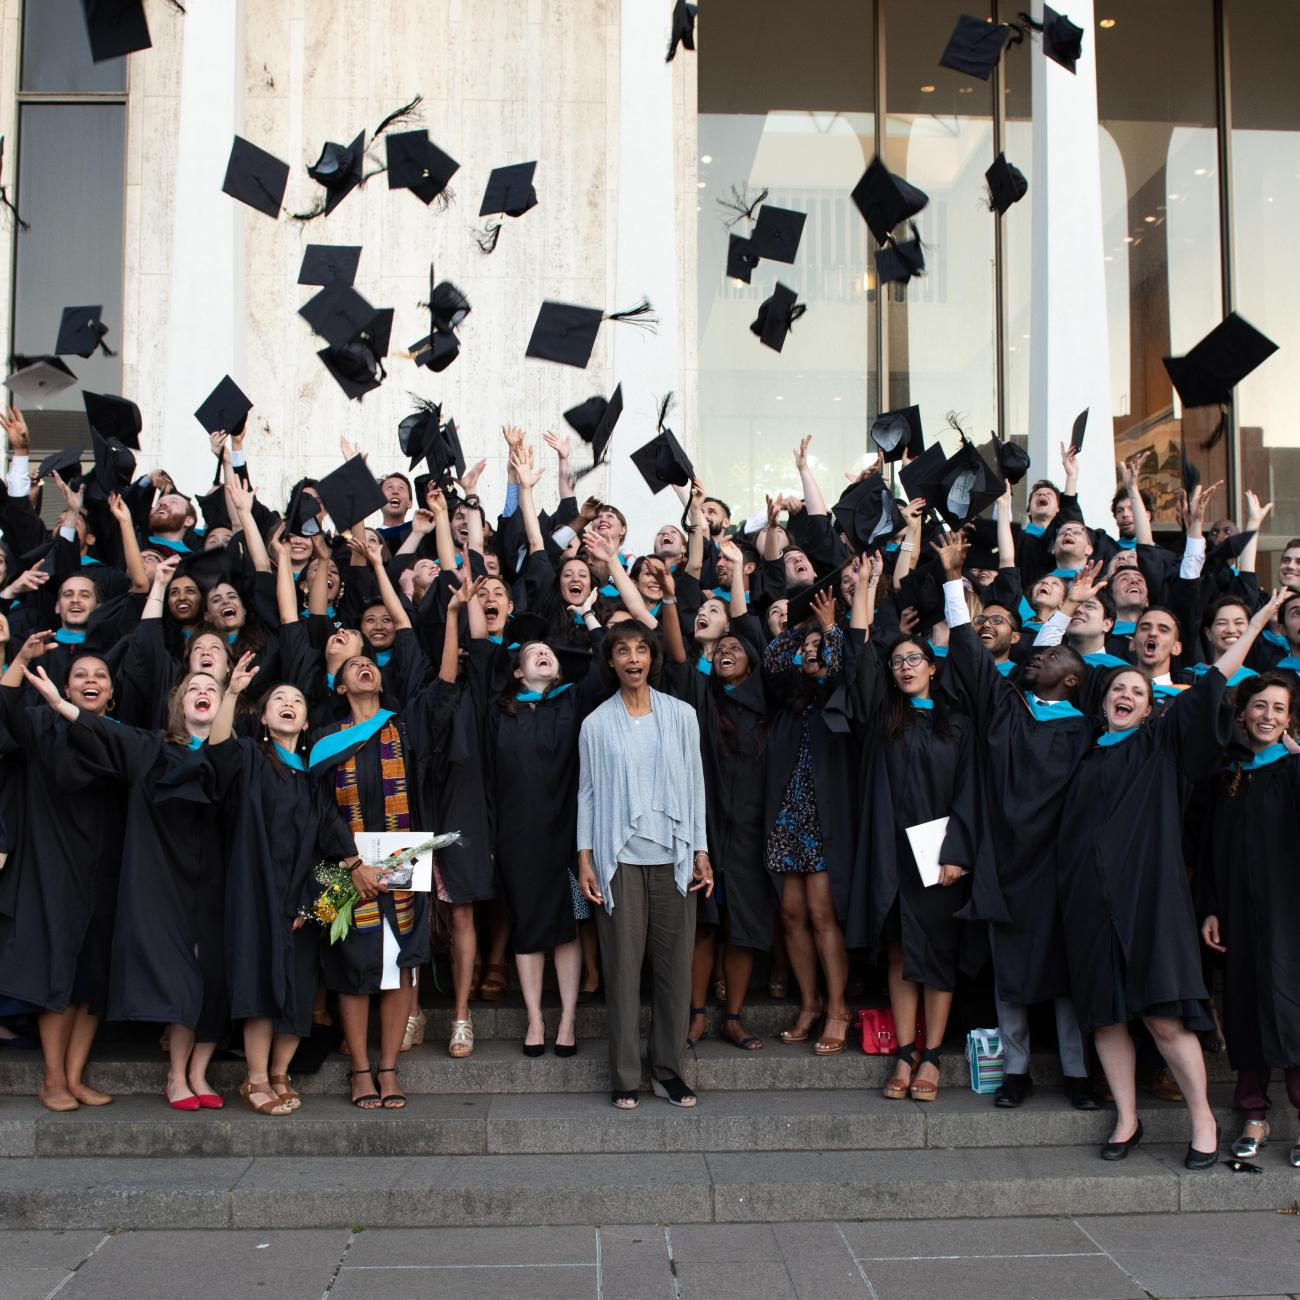 Graduating class throwing caps up in the air